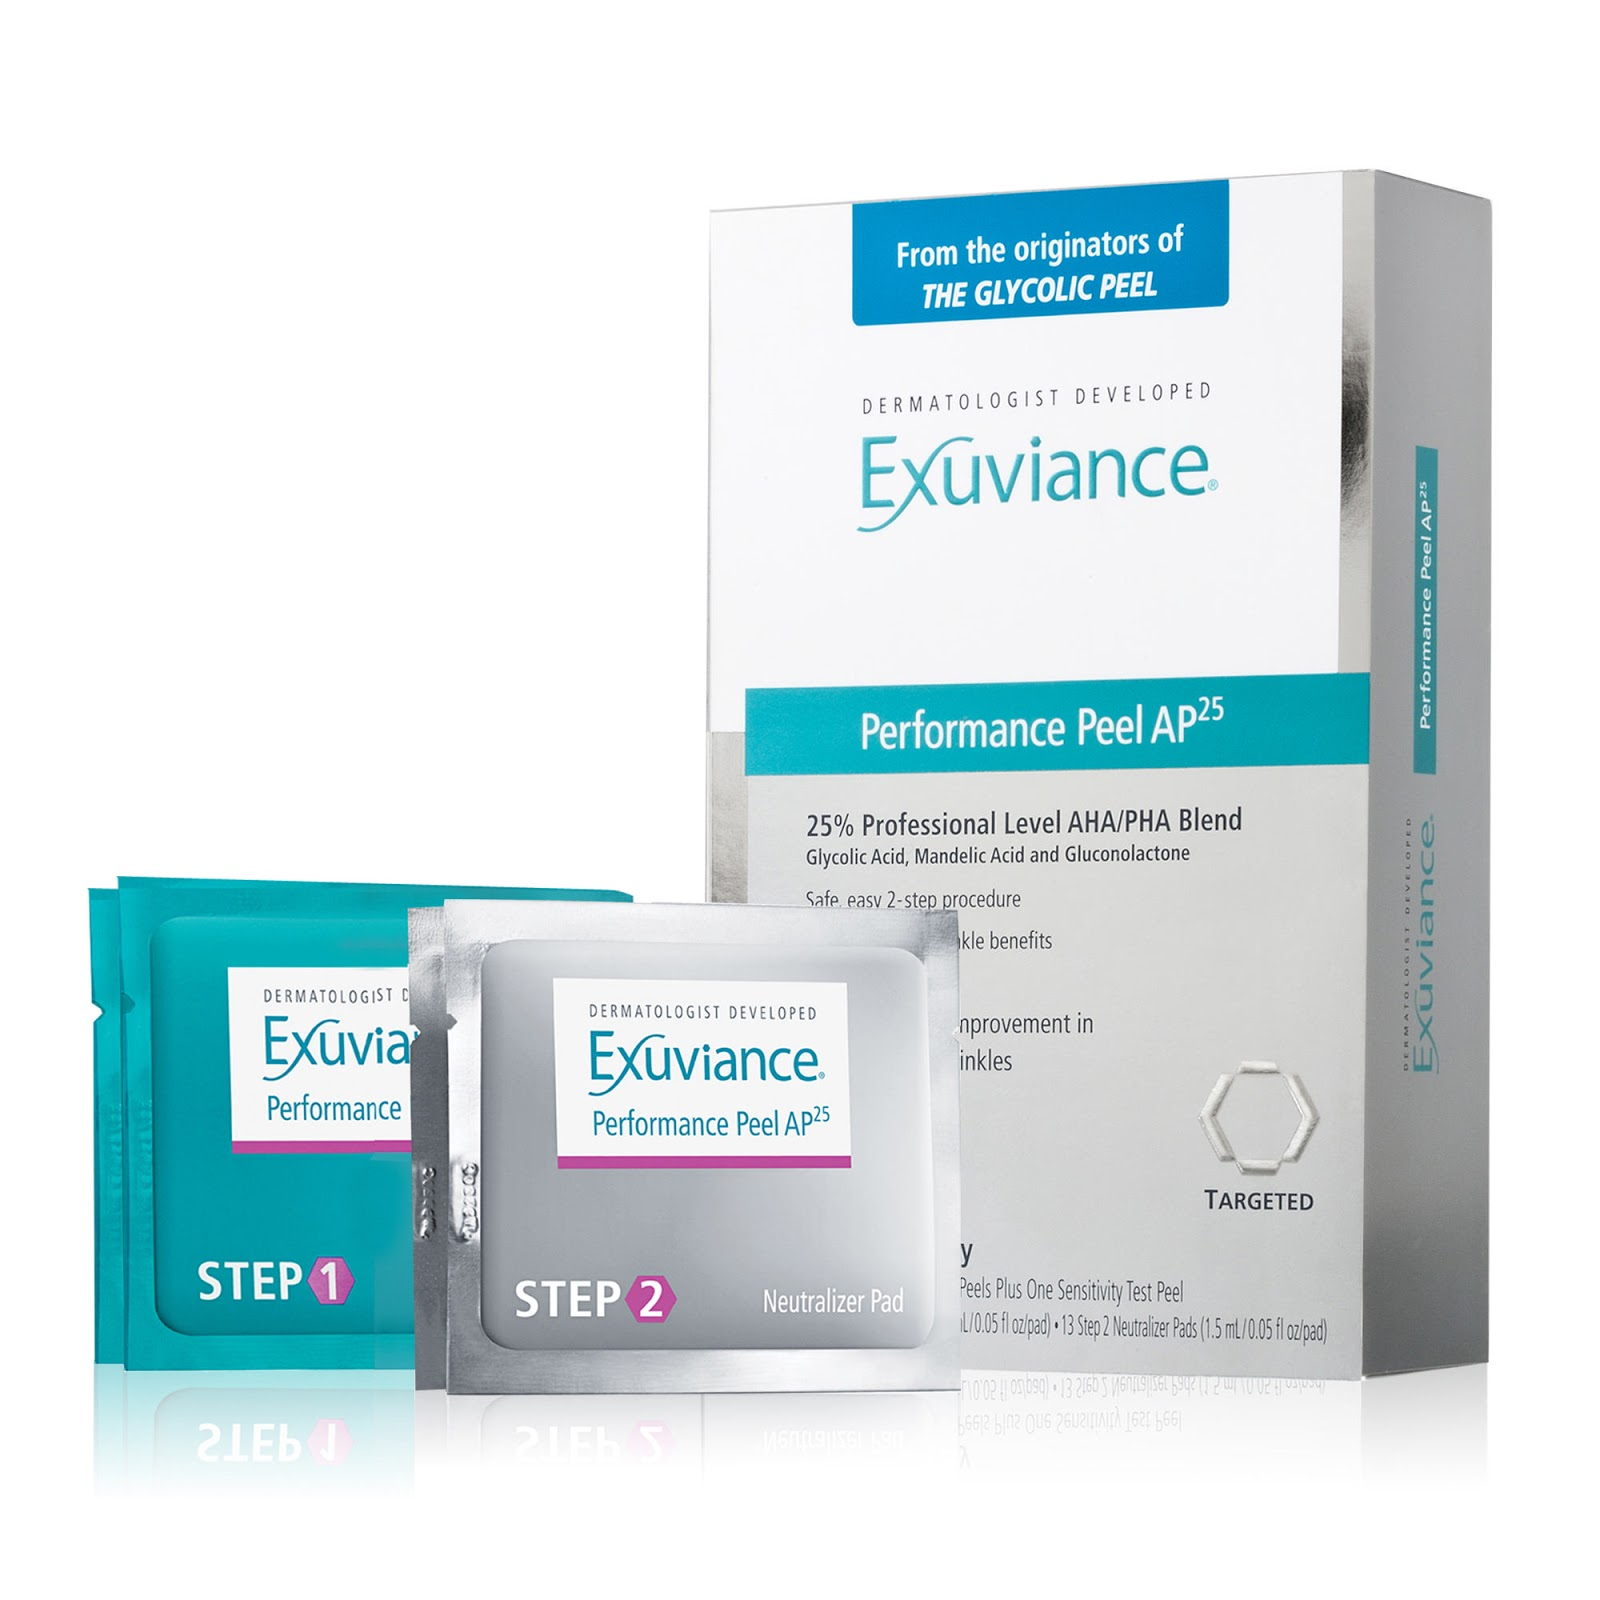 Review Exuviance Performance Peel Ap25 Performancepeel Soft Case Emerald Black Berry Bb Aurora Jacket Smooth Touch Dove Skin Care Is Clinically Proven To Reduce Lines And Wrinkles Increase Firmness Texture Even Tone With A Patented Bionic